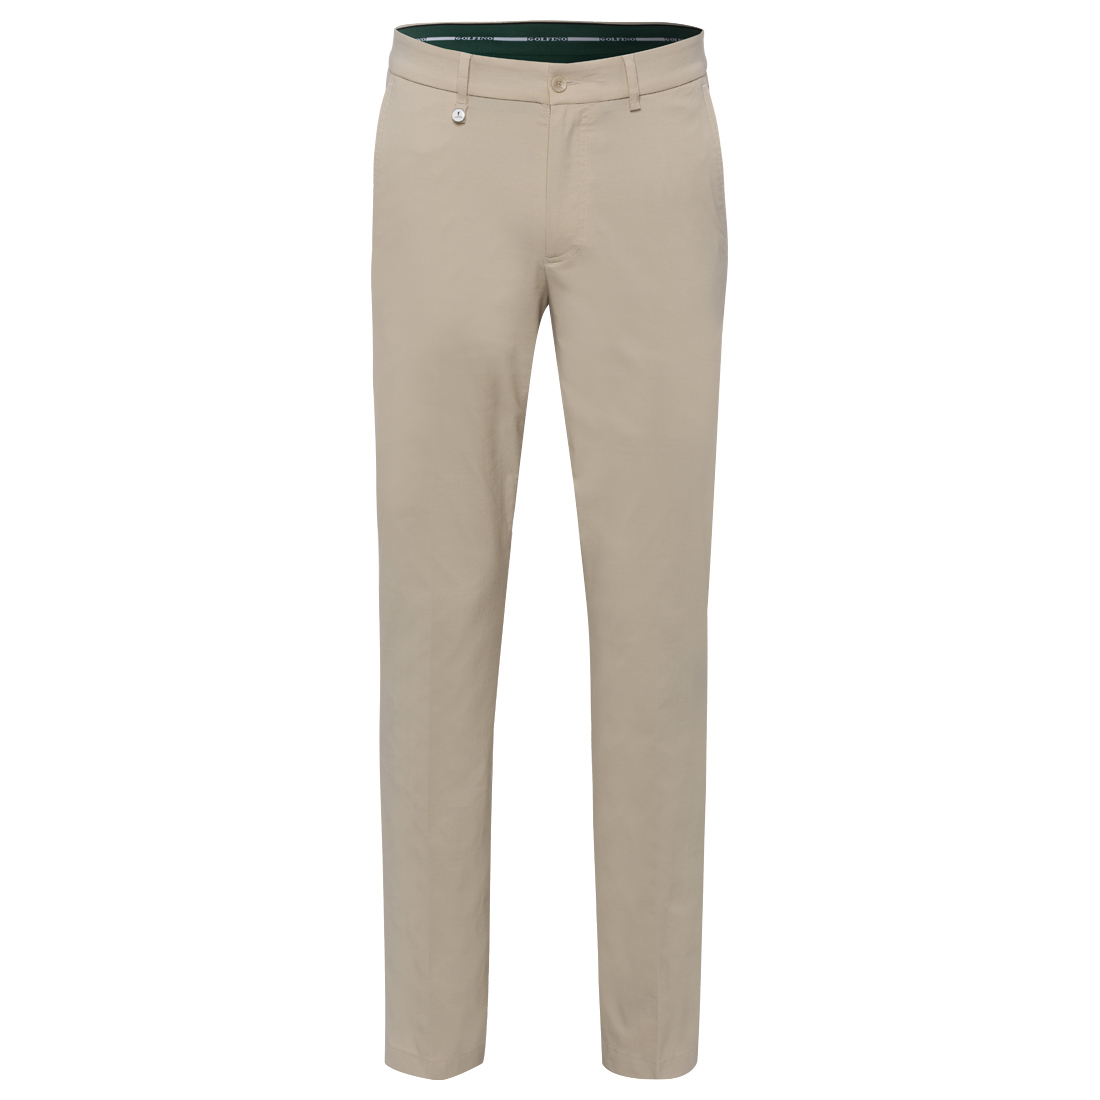 Herren Golfhose Techno Stretch in Regular Fit